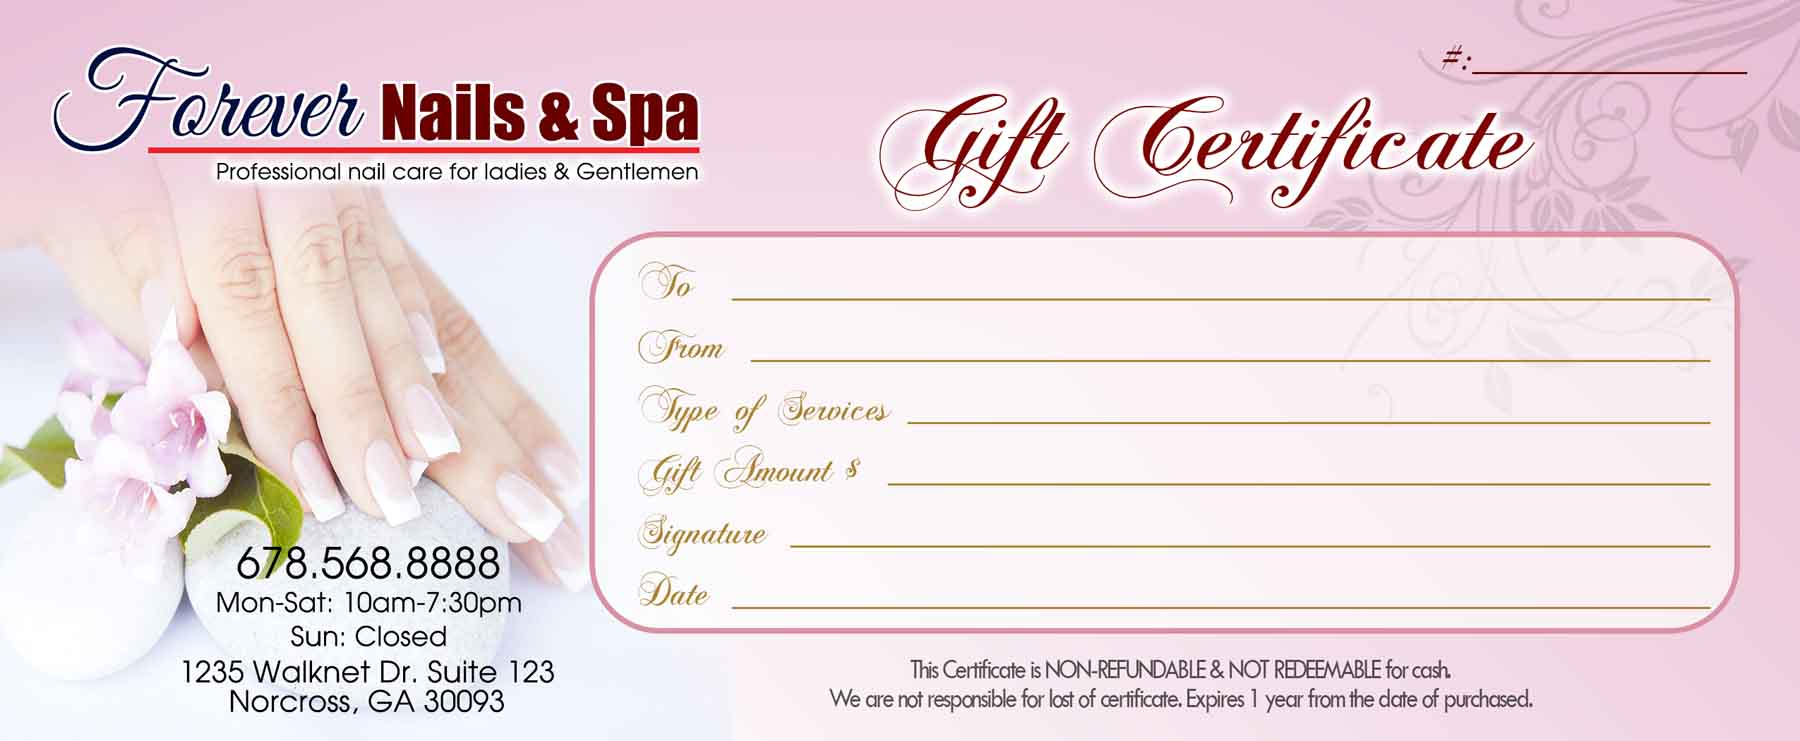 Gift certificates templates vn printing template gc15 enlage yelopaper Image collections